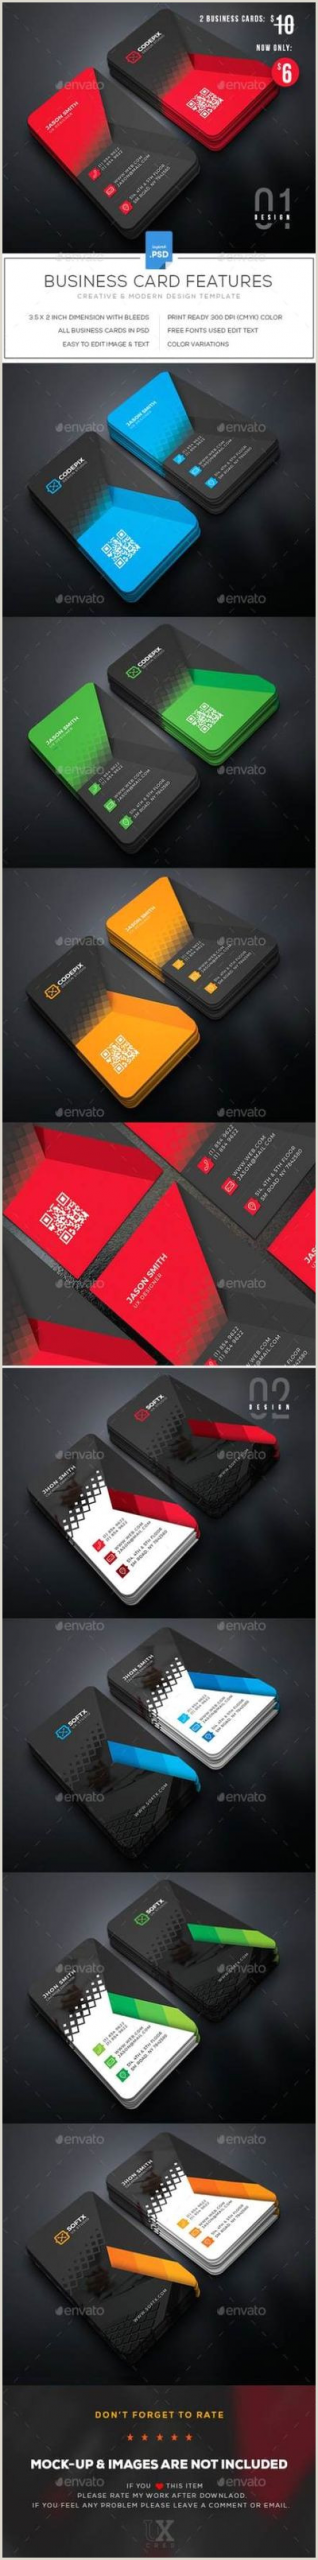 Business Cards Background Creative Modern Polygon Business Card